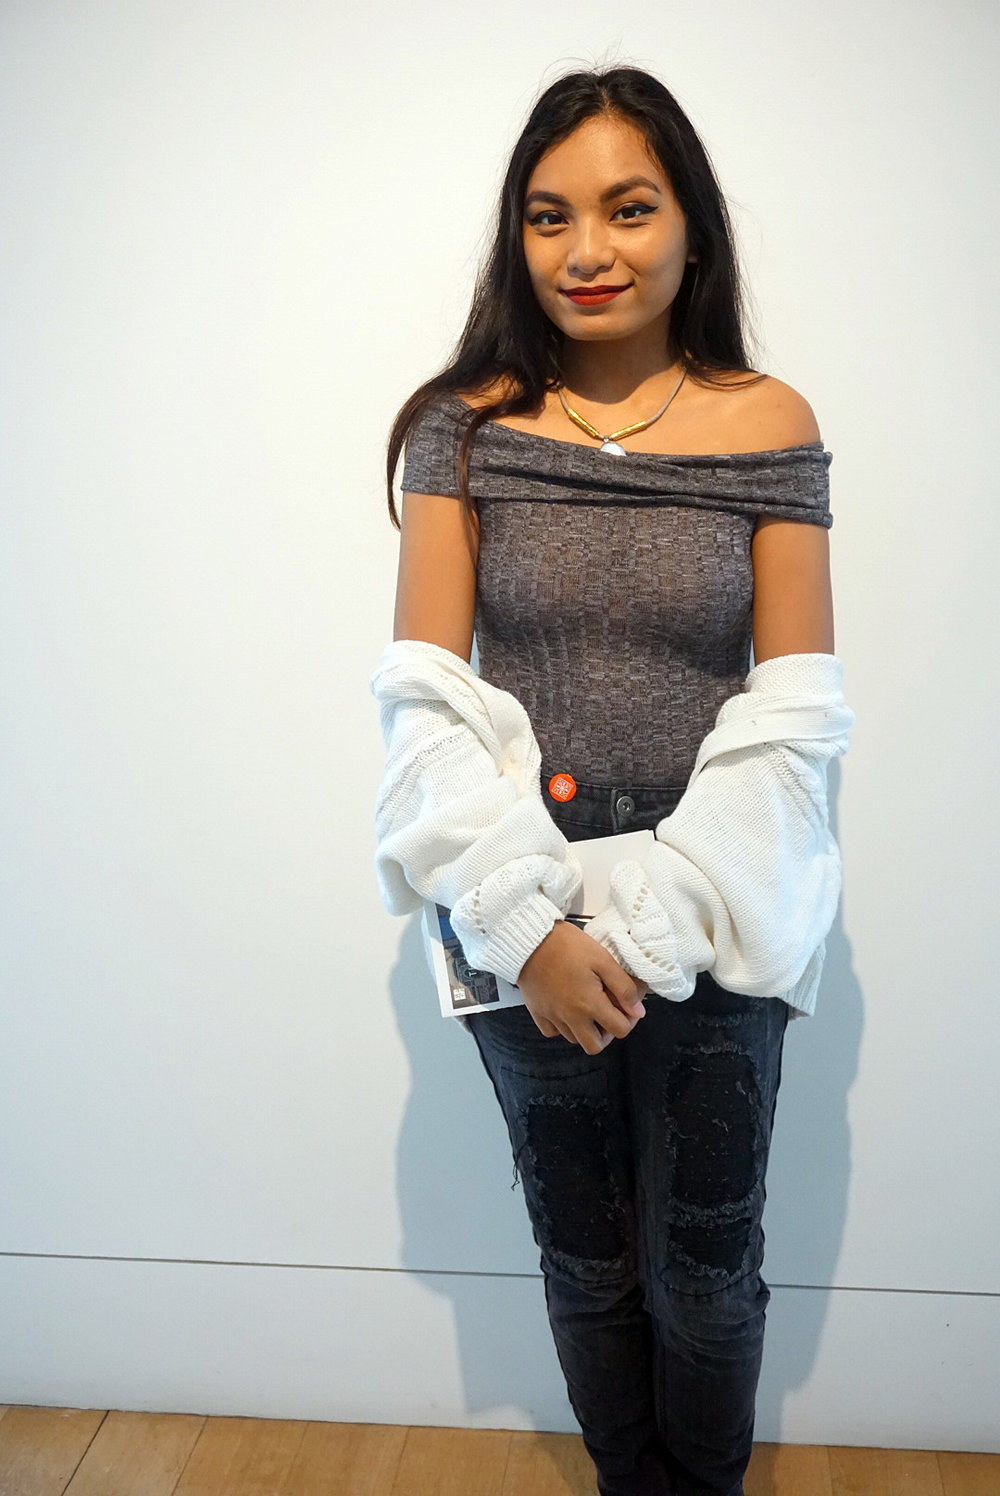 Off-The-Shoulder-Bodysuit-Black-Faded-Ripped-Girlfriend-Jeans-Blogger-Style-Casual-Look-LINDATENCHITRAN-1-1080x1616.jpg